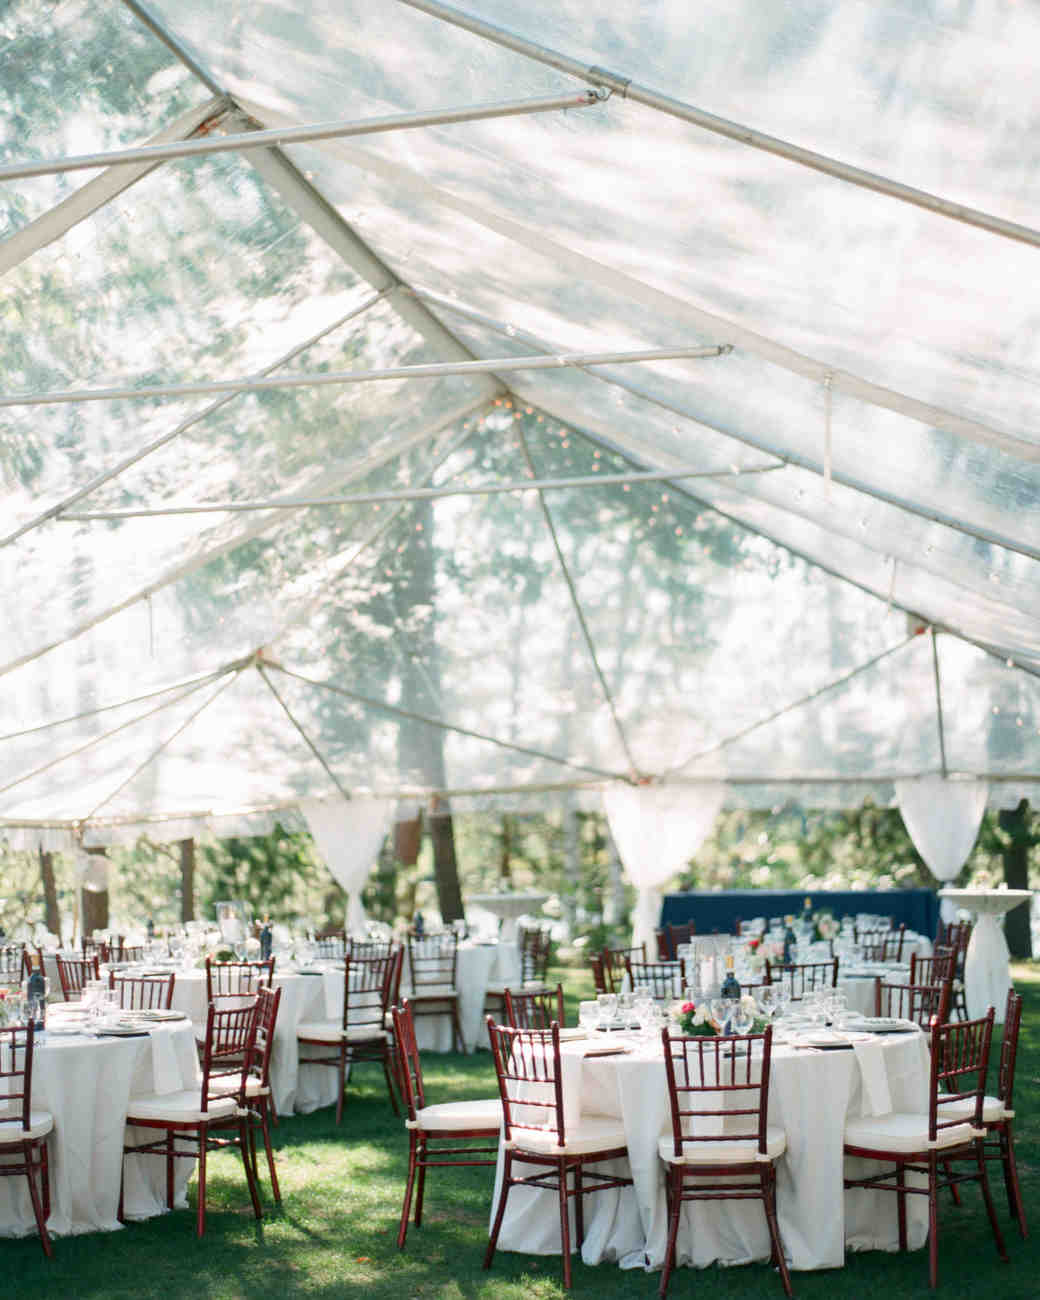 Buy Outdoor Wedding Decorations : Ideas to upgrade your wedding reception martha stewart weddings